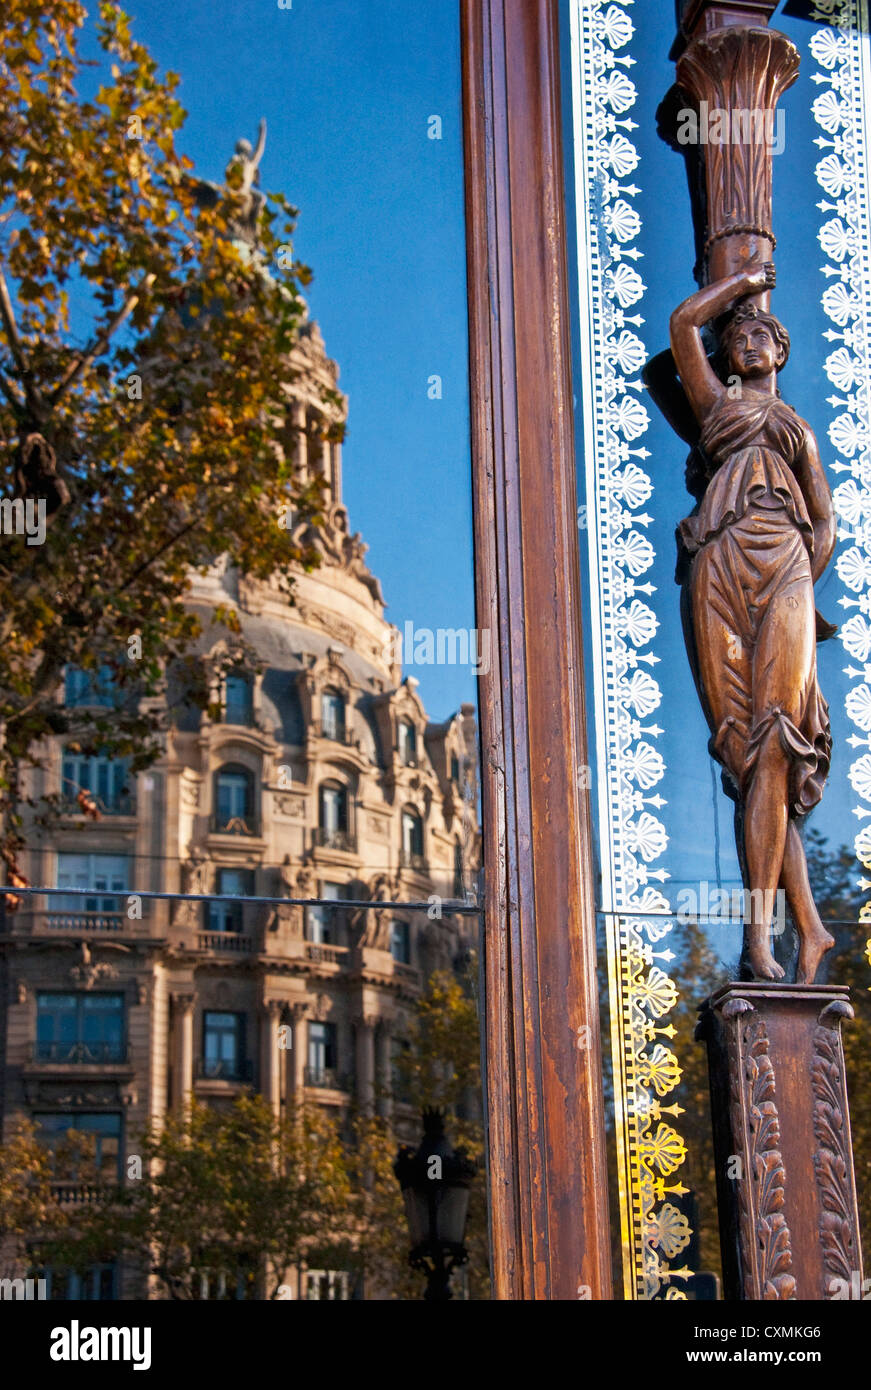 Le long de l'Architecture de Barcelone, le Paseo de Gracia in Photo Stock